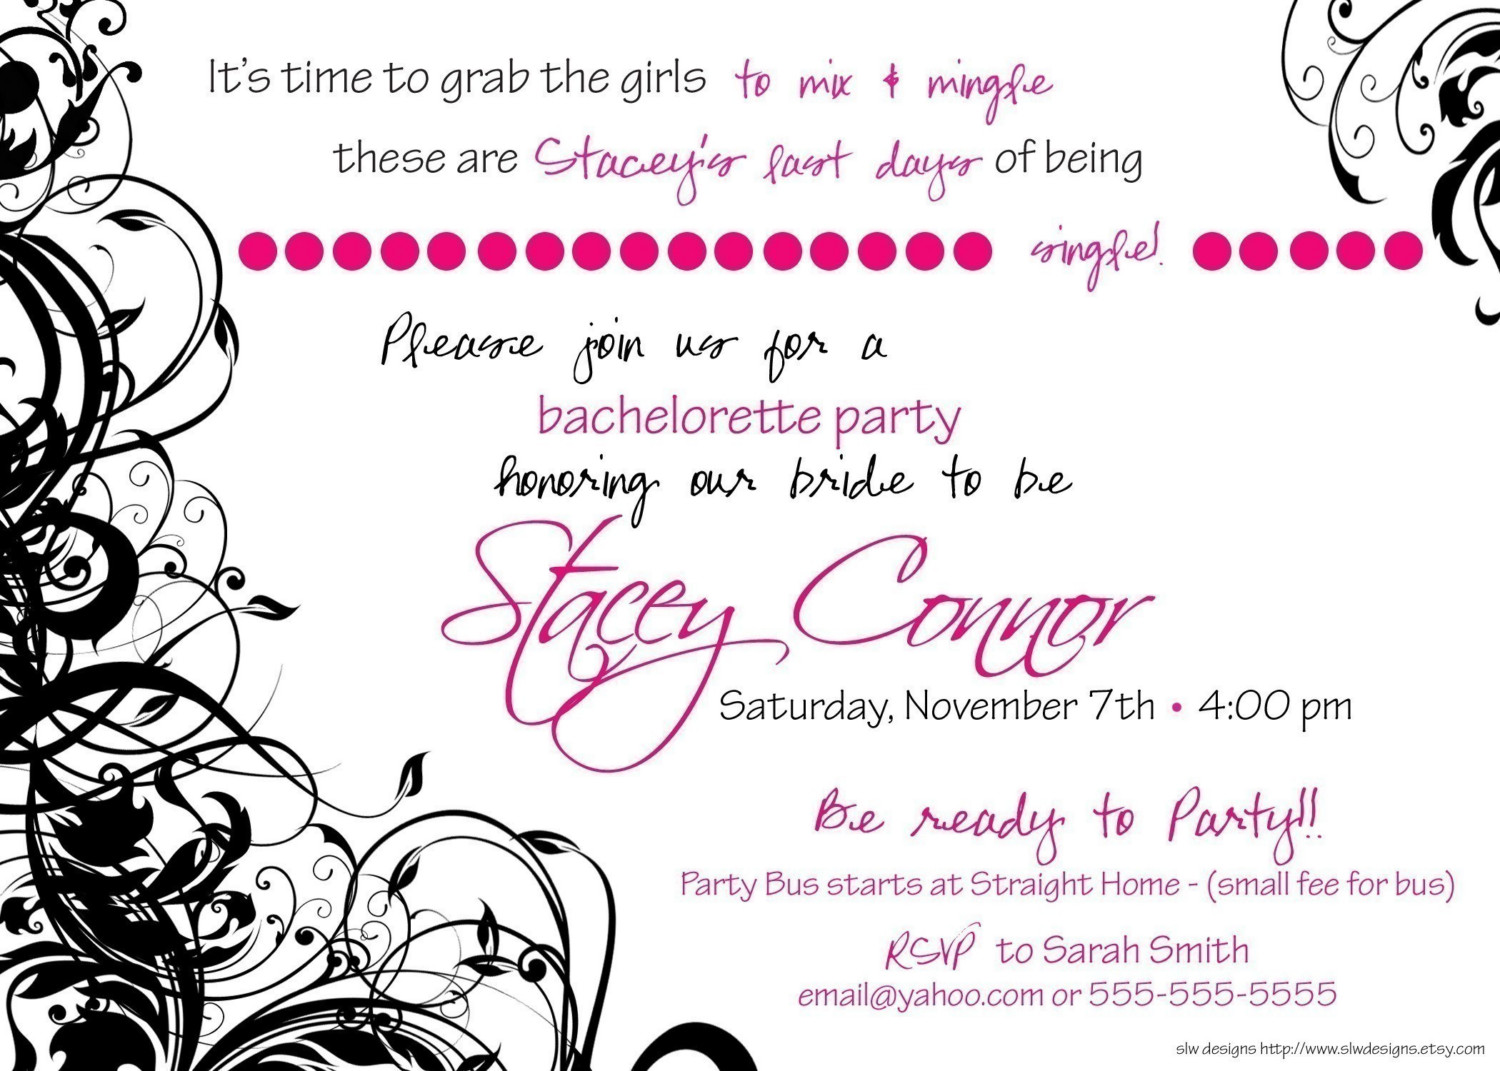 Adult birthday party invitation wording stopboris Choice Image